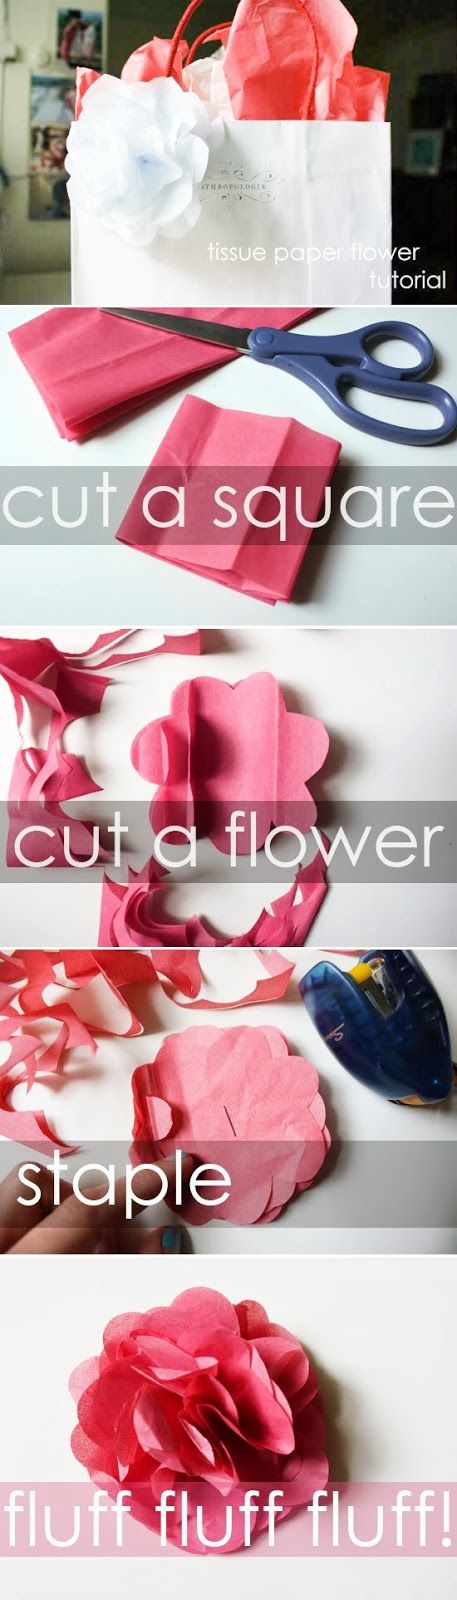 Easy DIY Crafts: Tissue paper flower